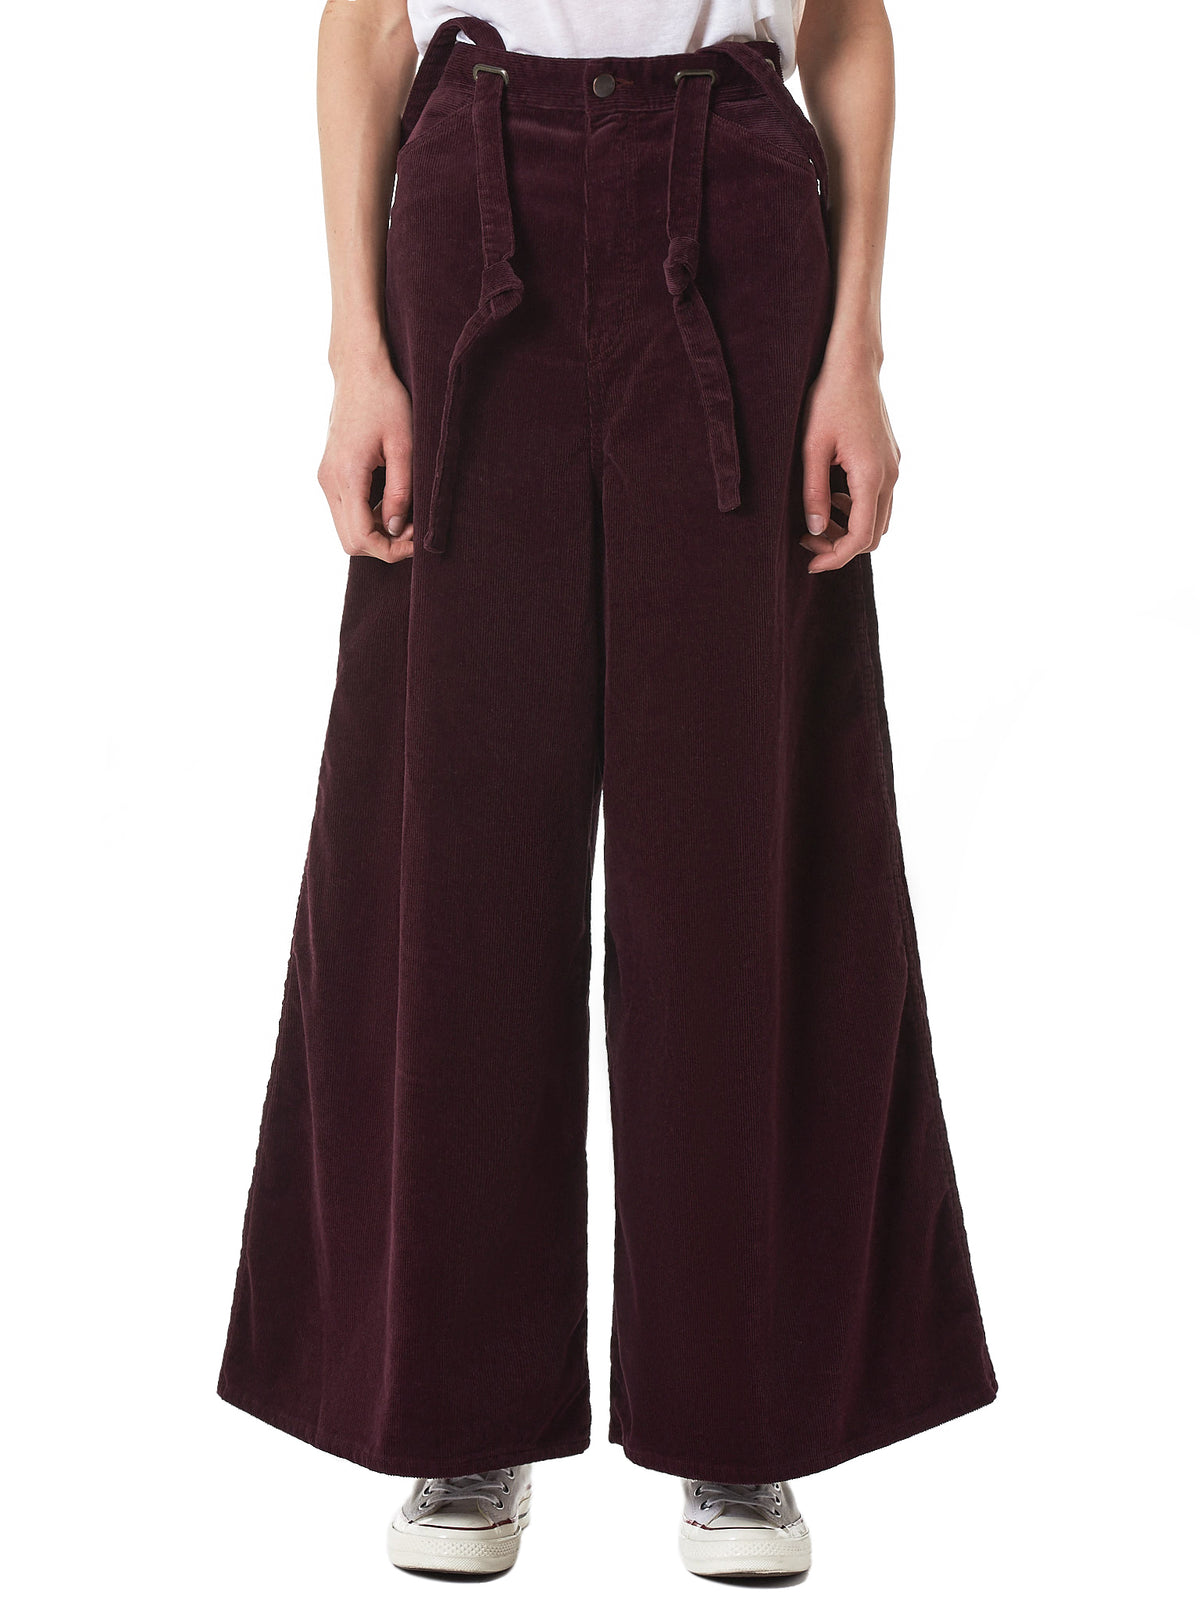 Suspender-Strap Trousers (K1810LP171-WINE)